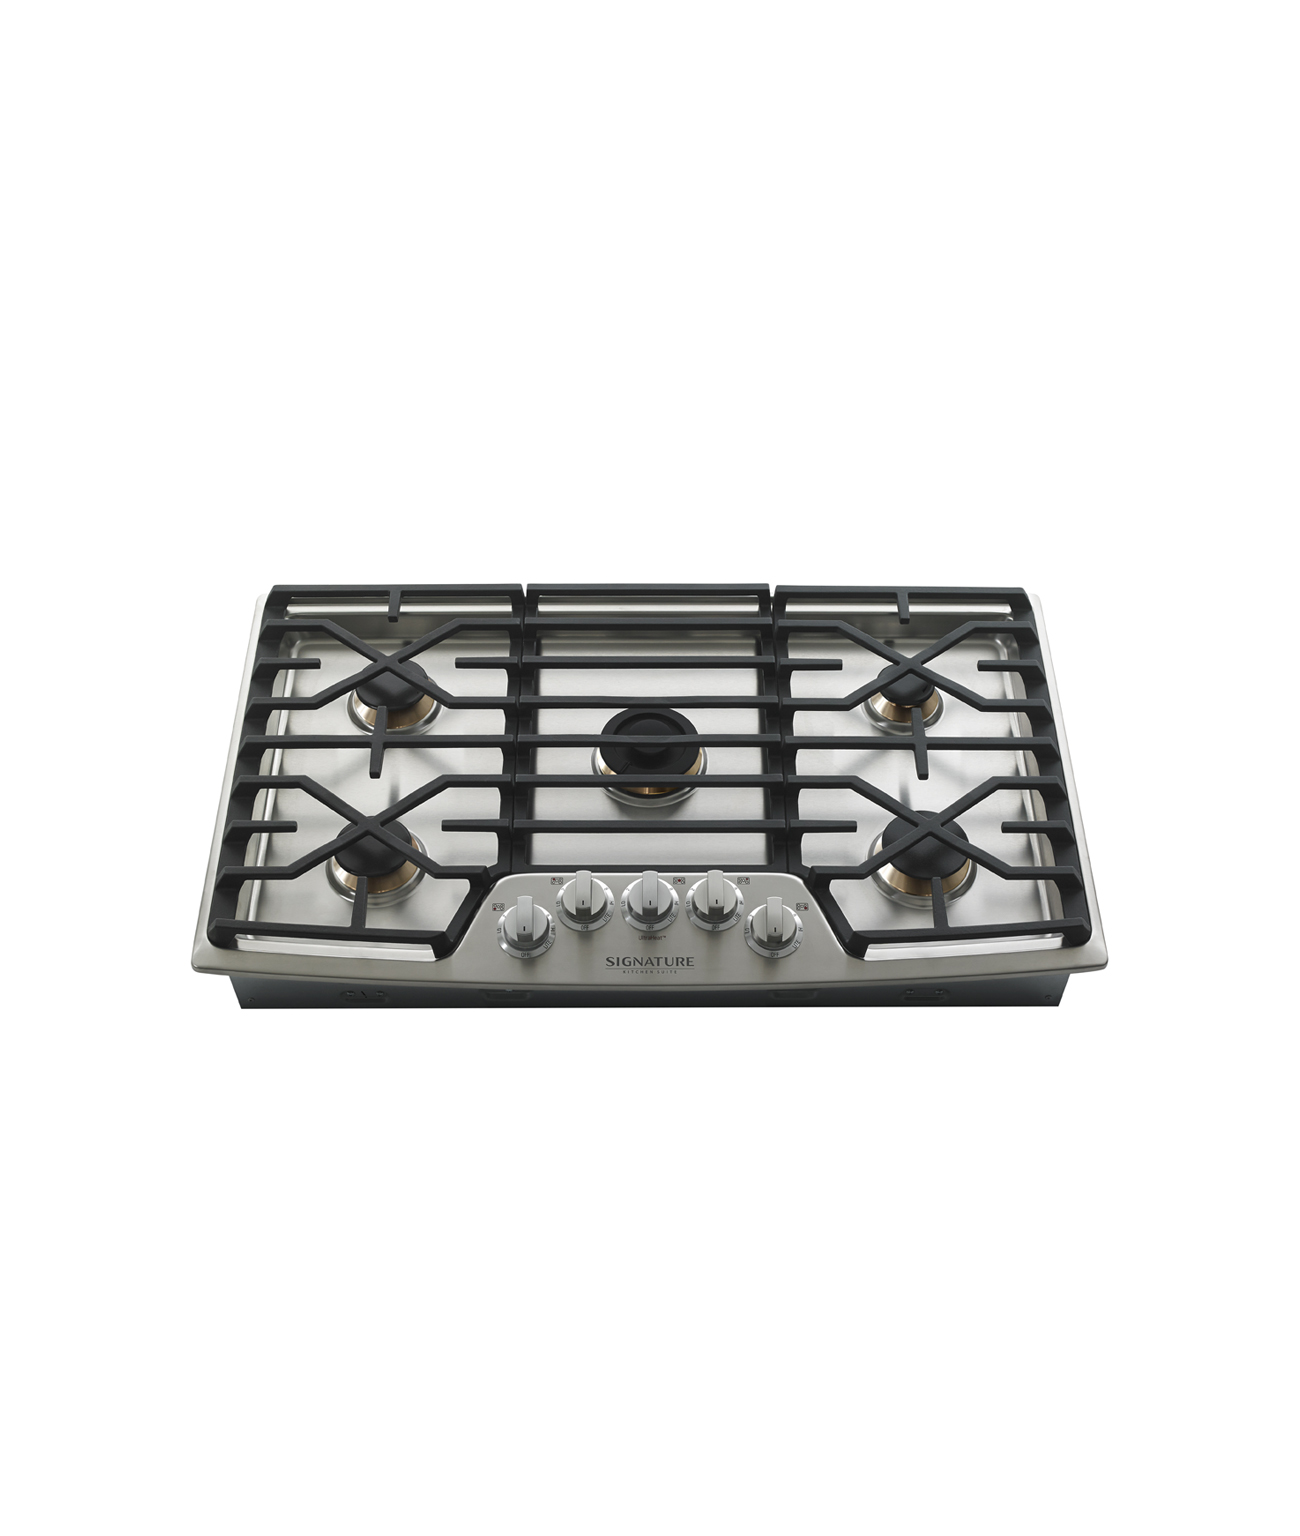 36-inch Gas Cooktop from Signature Kitchen Suite